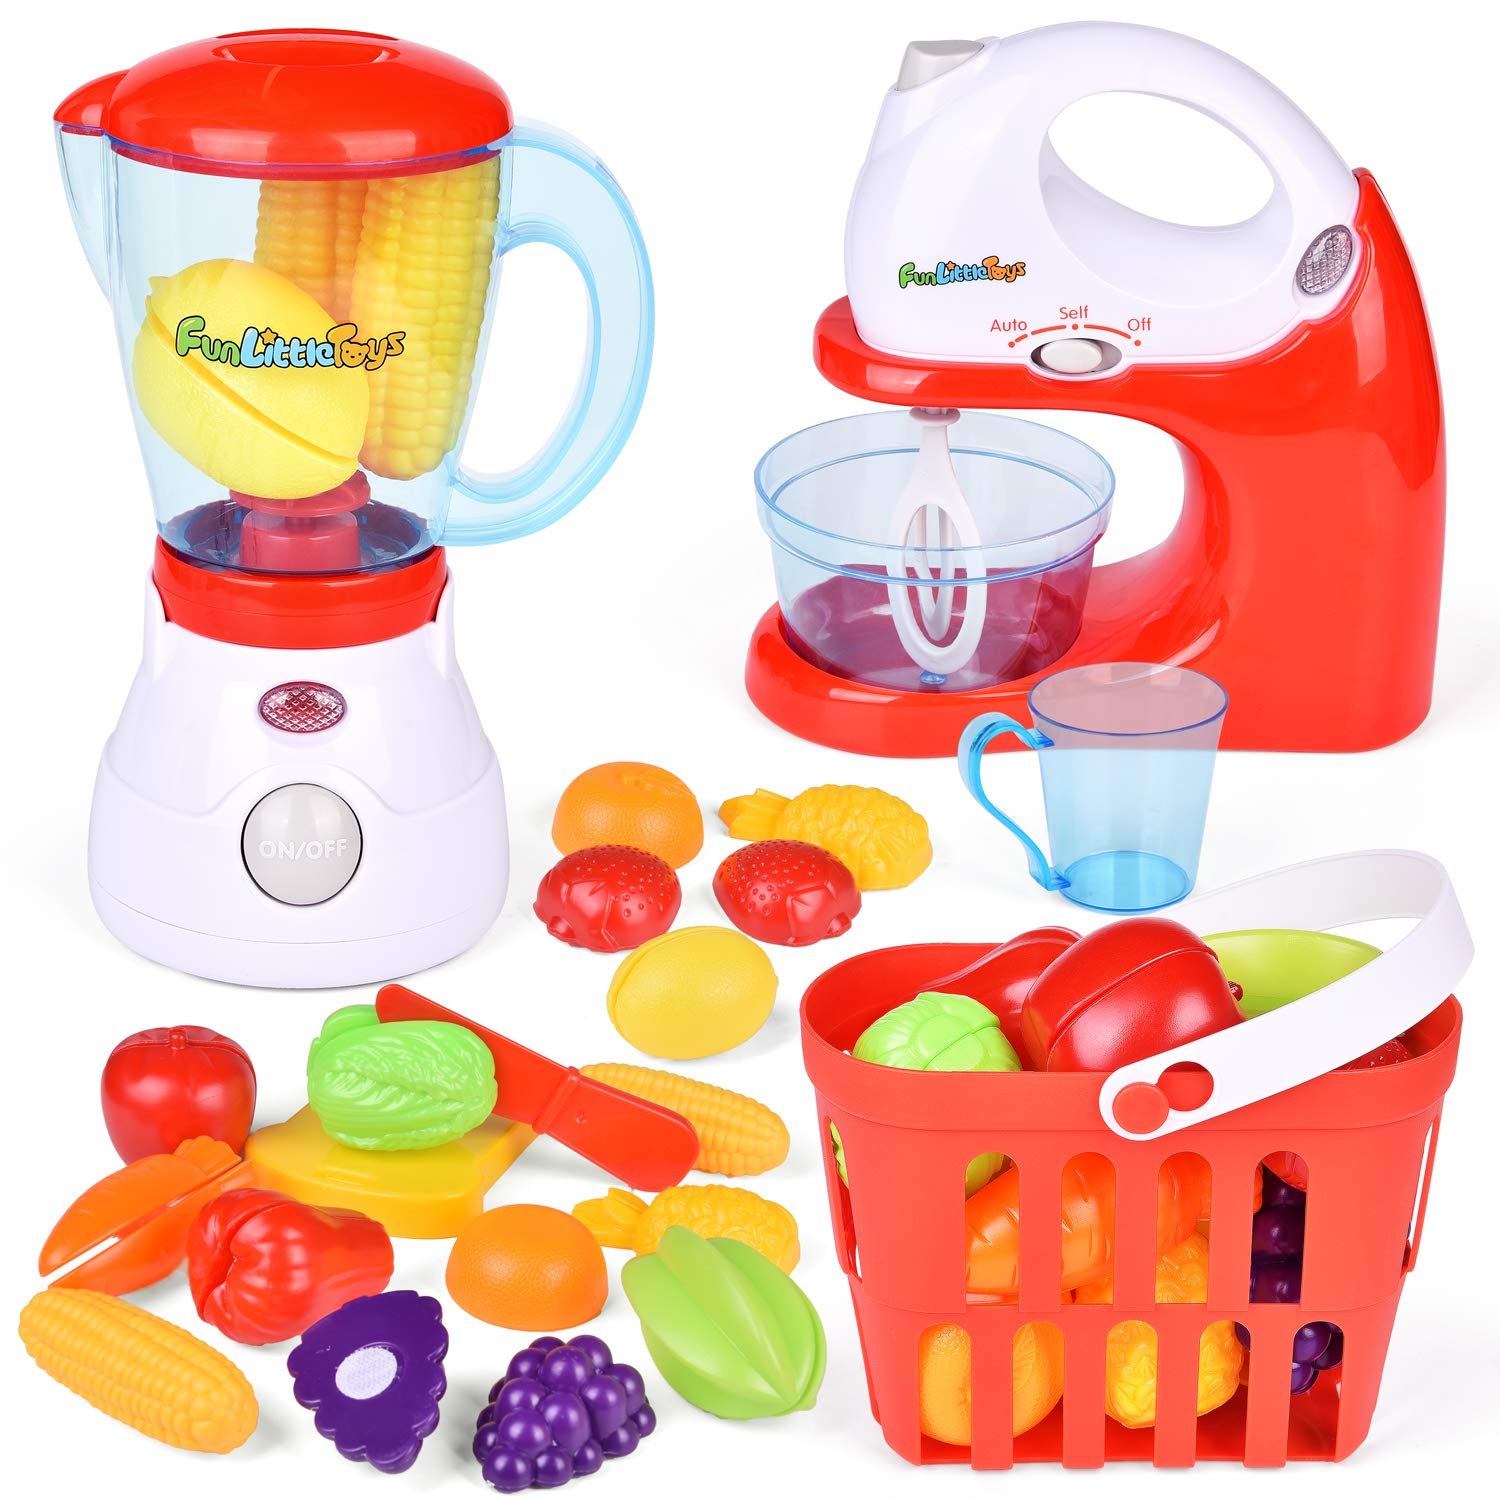 B07Z1WR5VR FunLittleToy Kids Play Kitchen, Pretend Play Set with Mixer, Blender, Play Foods and Accessories 71PZ2ruk8fL